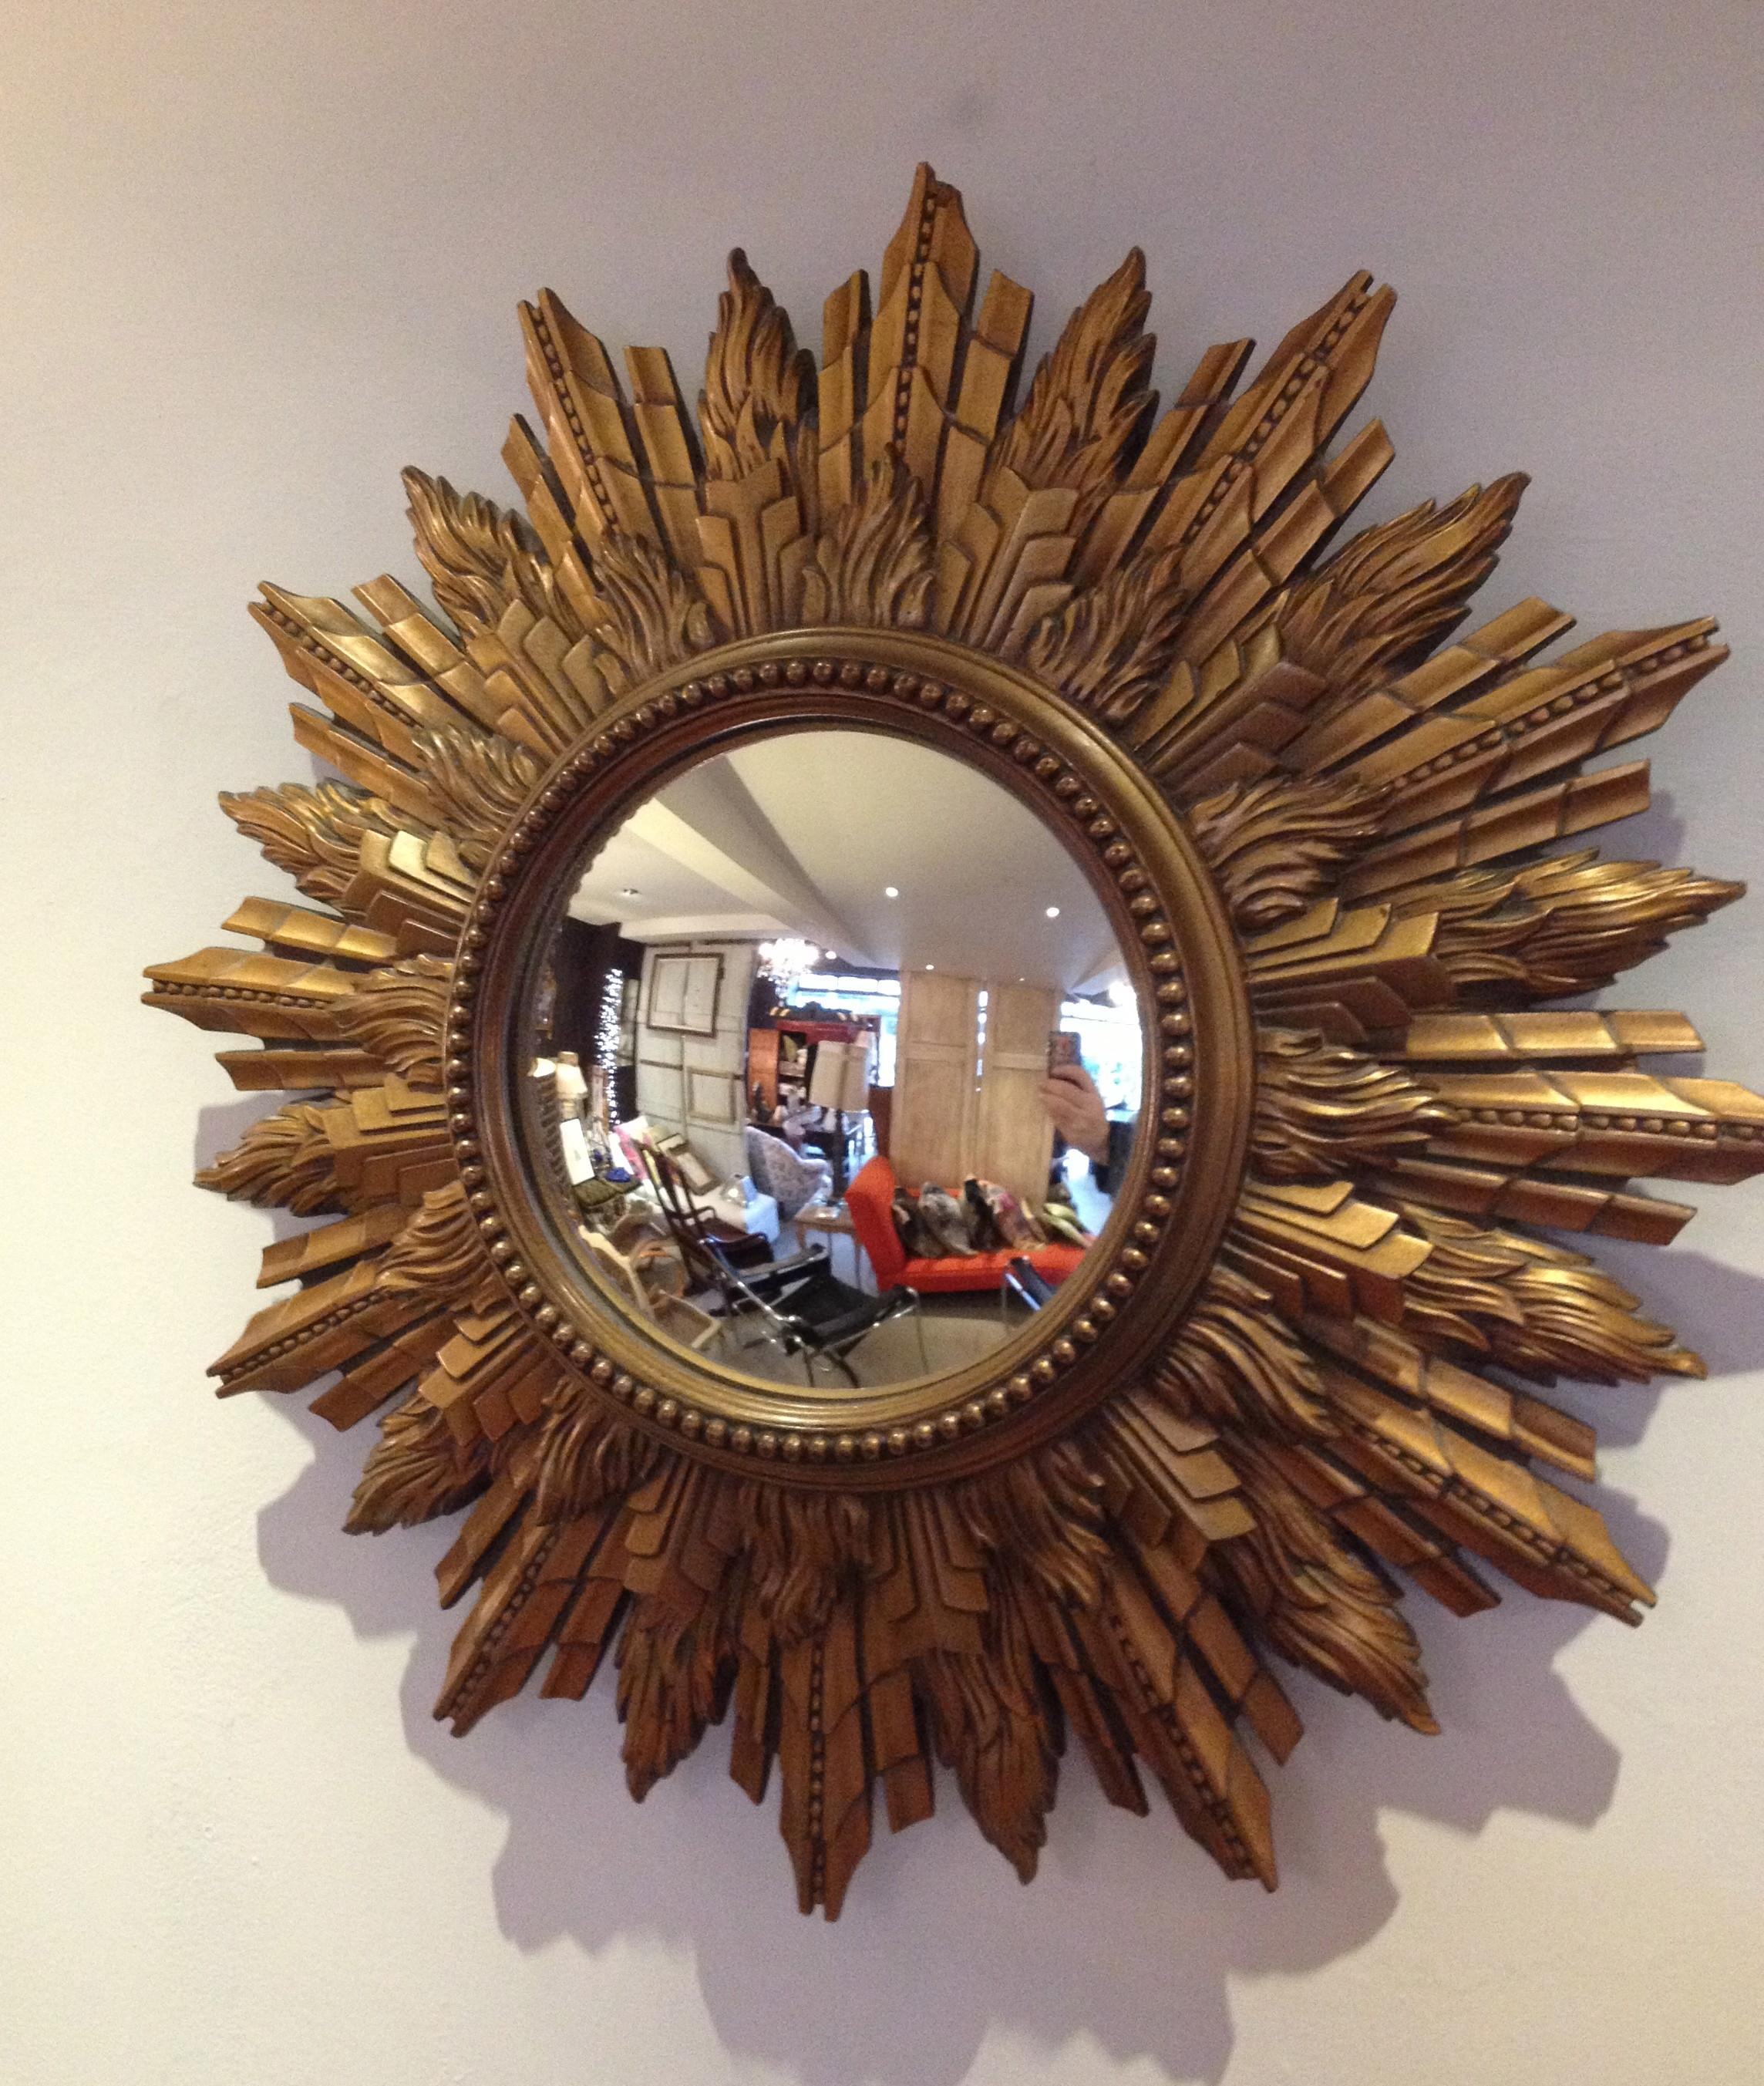 Sunburst Wall Decor Wood Shim Starburst Mirror Crafts